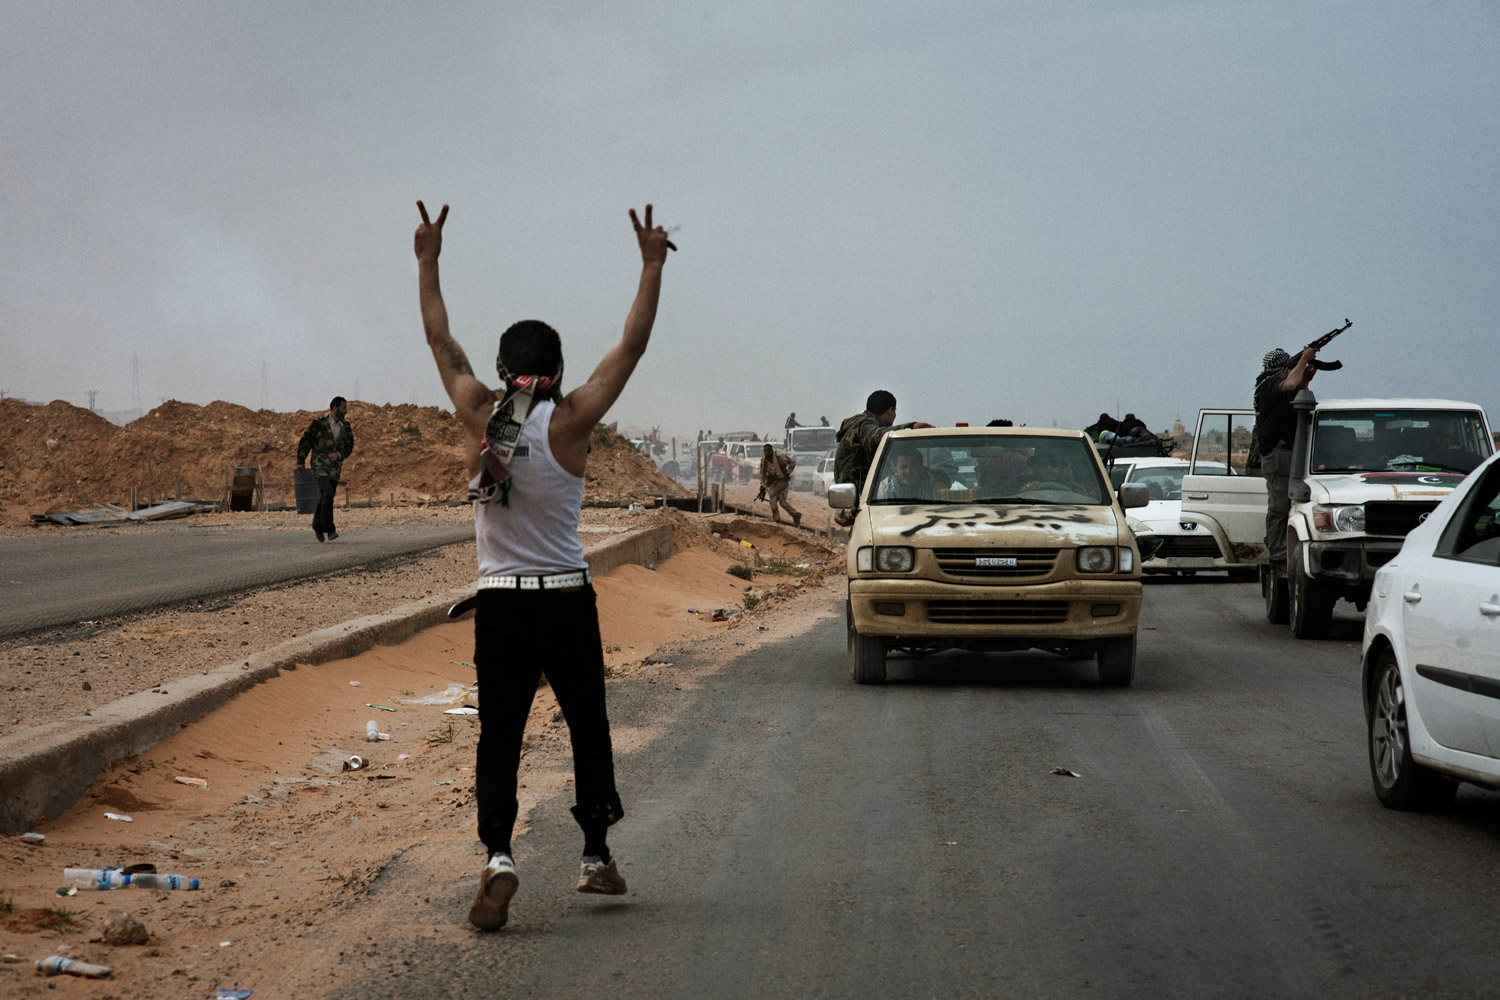 Rebels retreat in a traffic jam of gun trucks and civilian cars outside of Bin Jawad, March 29, 2011.